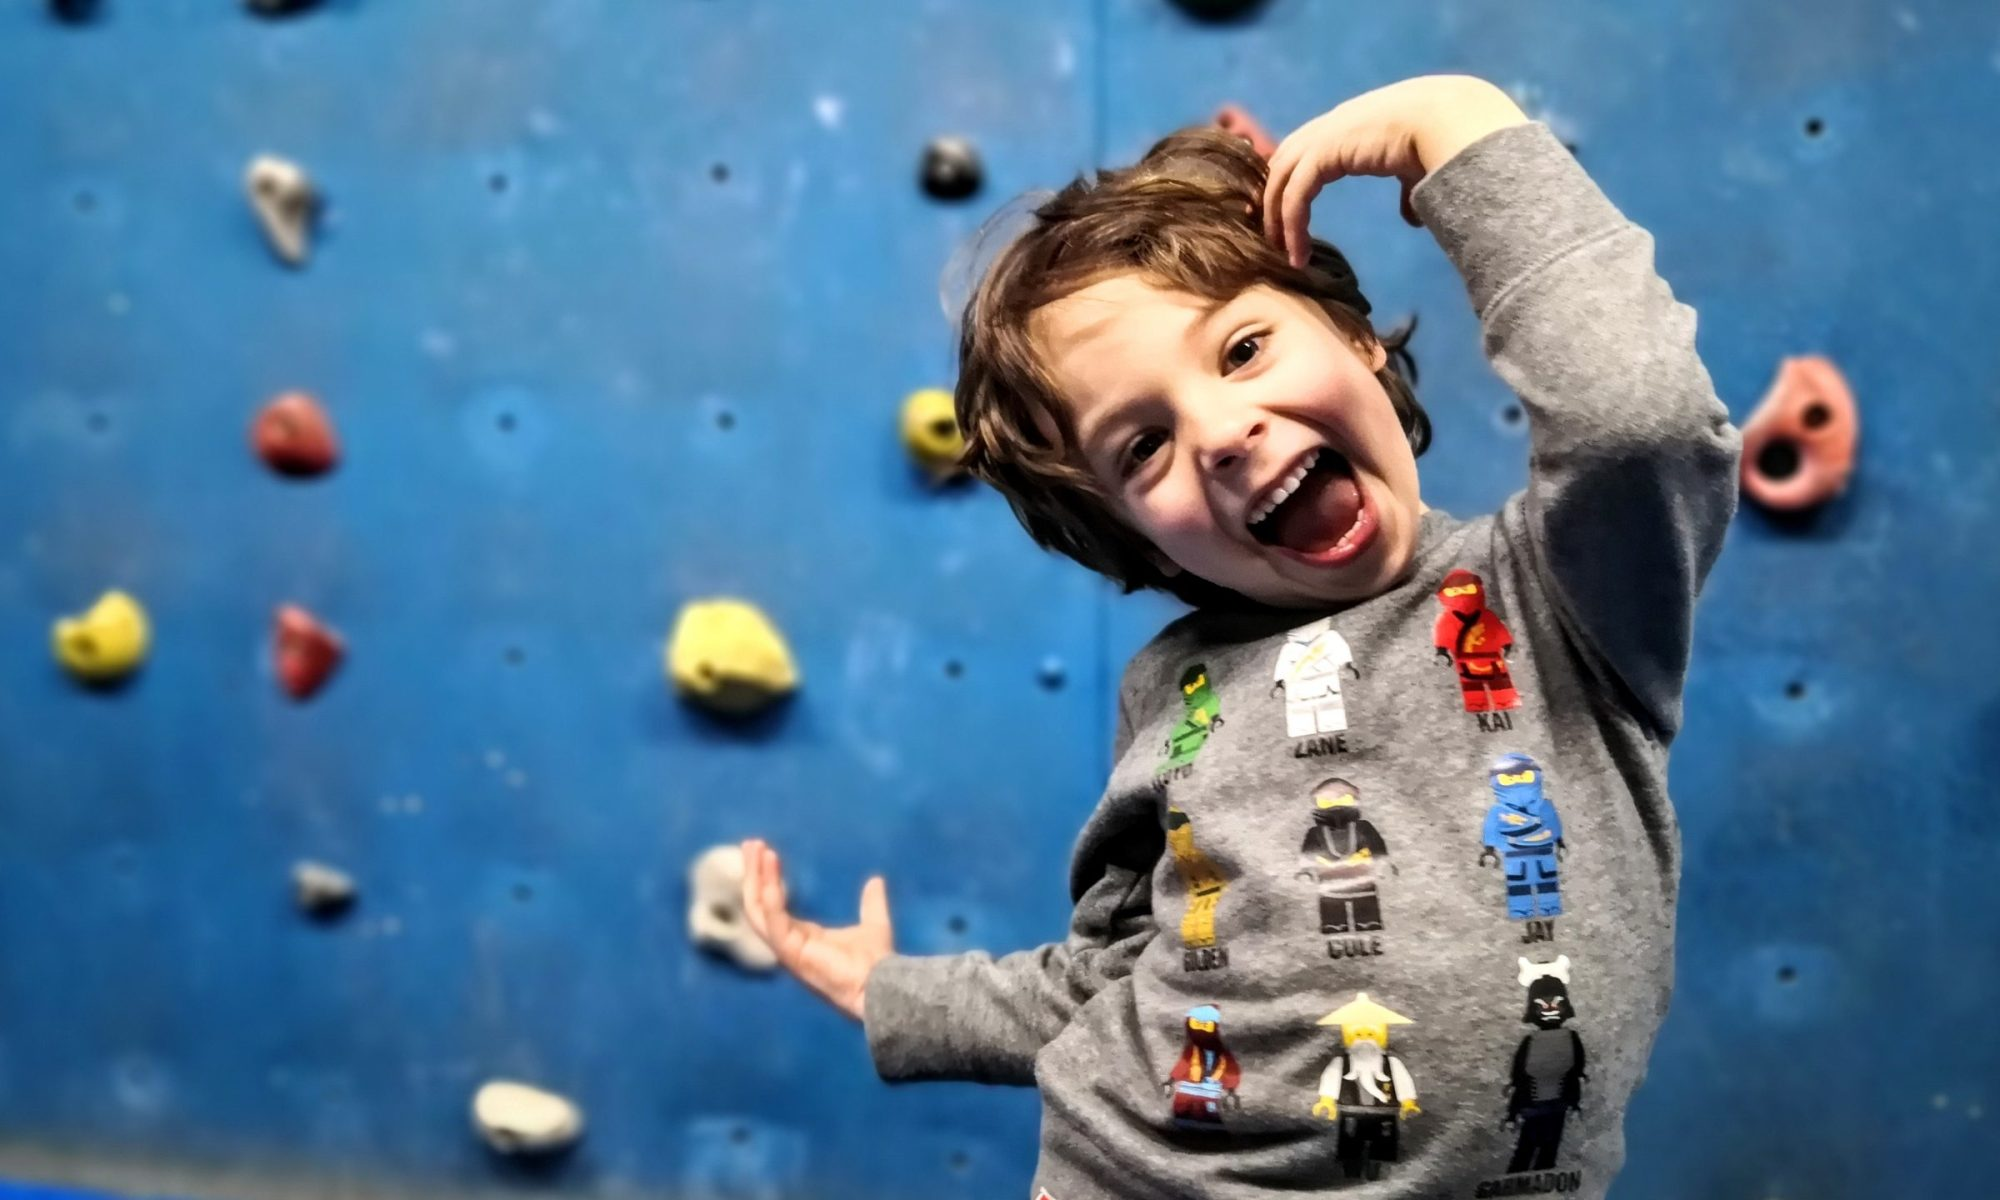 A happy child in front of a climbing wall at Climbat, Amman